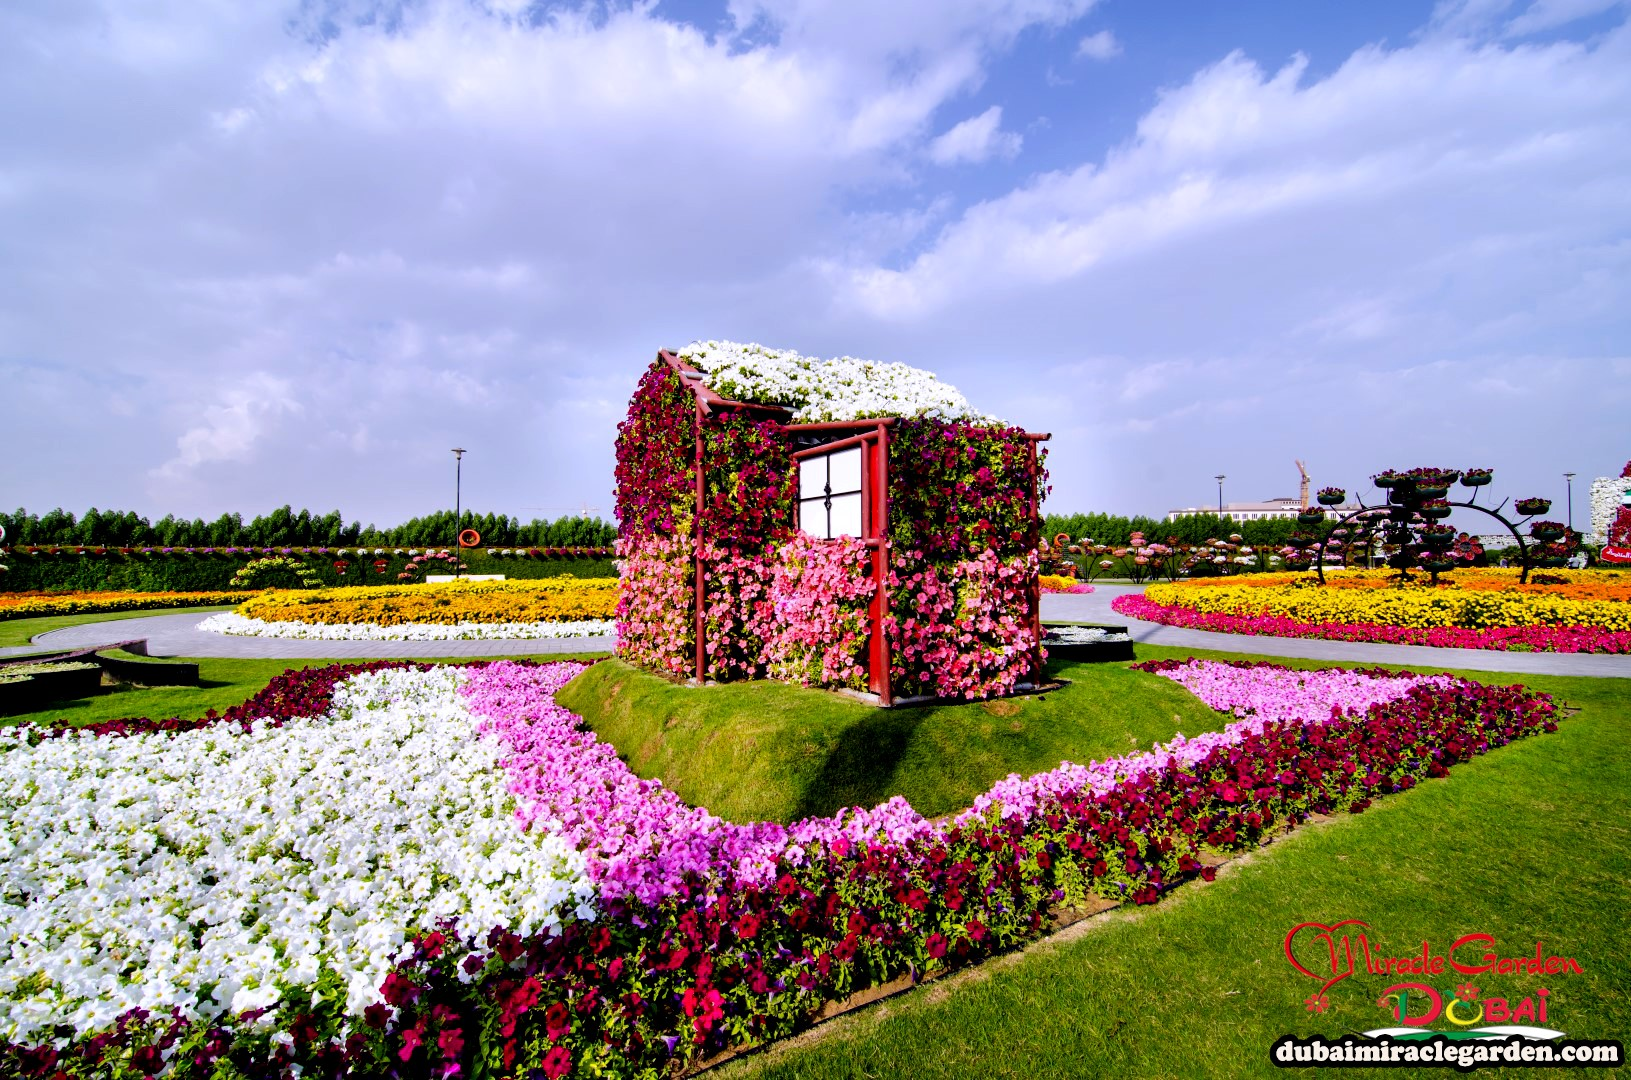 Dubai Miracle Garden The World s Biggest Natural Flower Garden With Over 45 Million Flowers